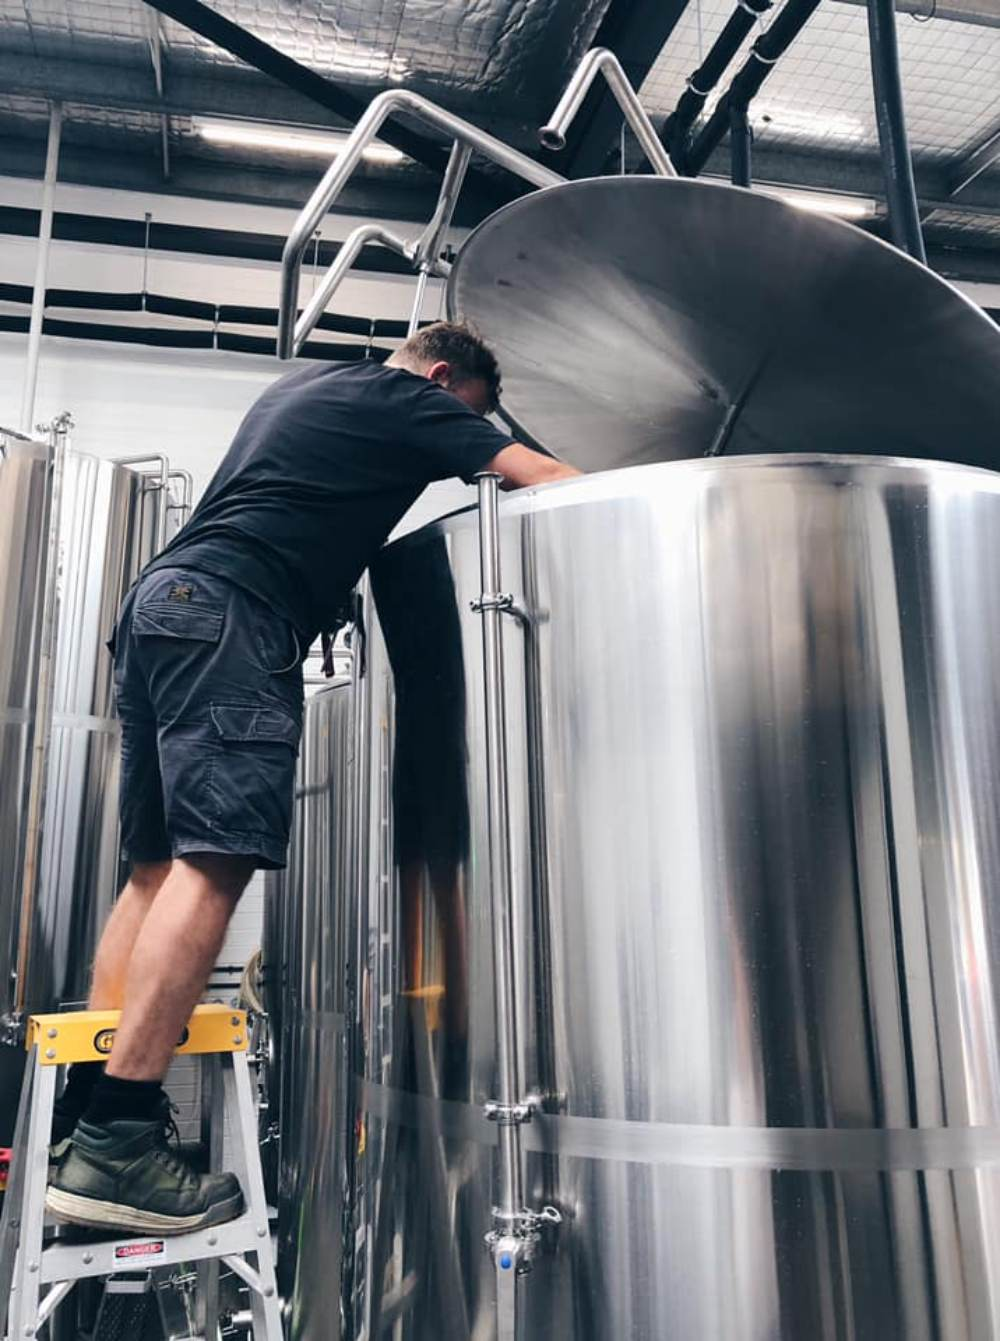 brewery beer brewing equipments,conical stainless steel beer fermenter,commercial brewery equipments for sale,how to start brewery,brewery equipment cost,beer tank,beer bottling machine